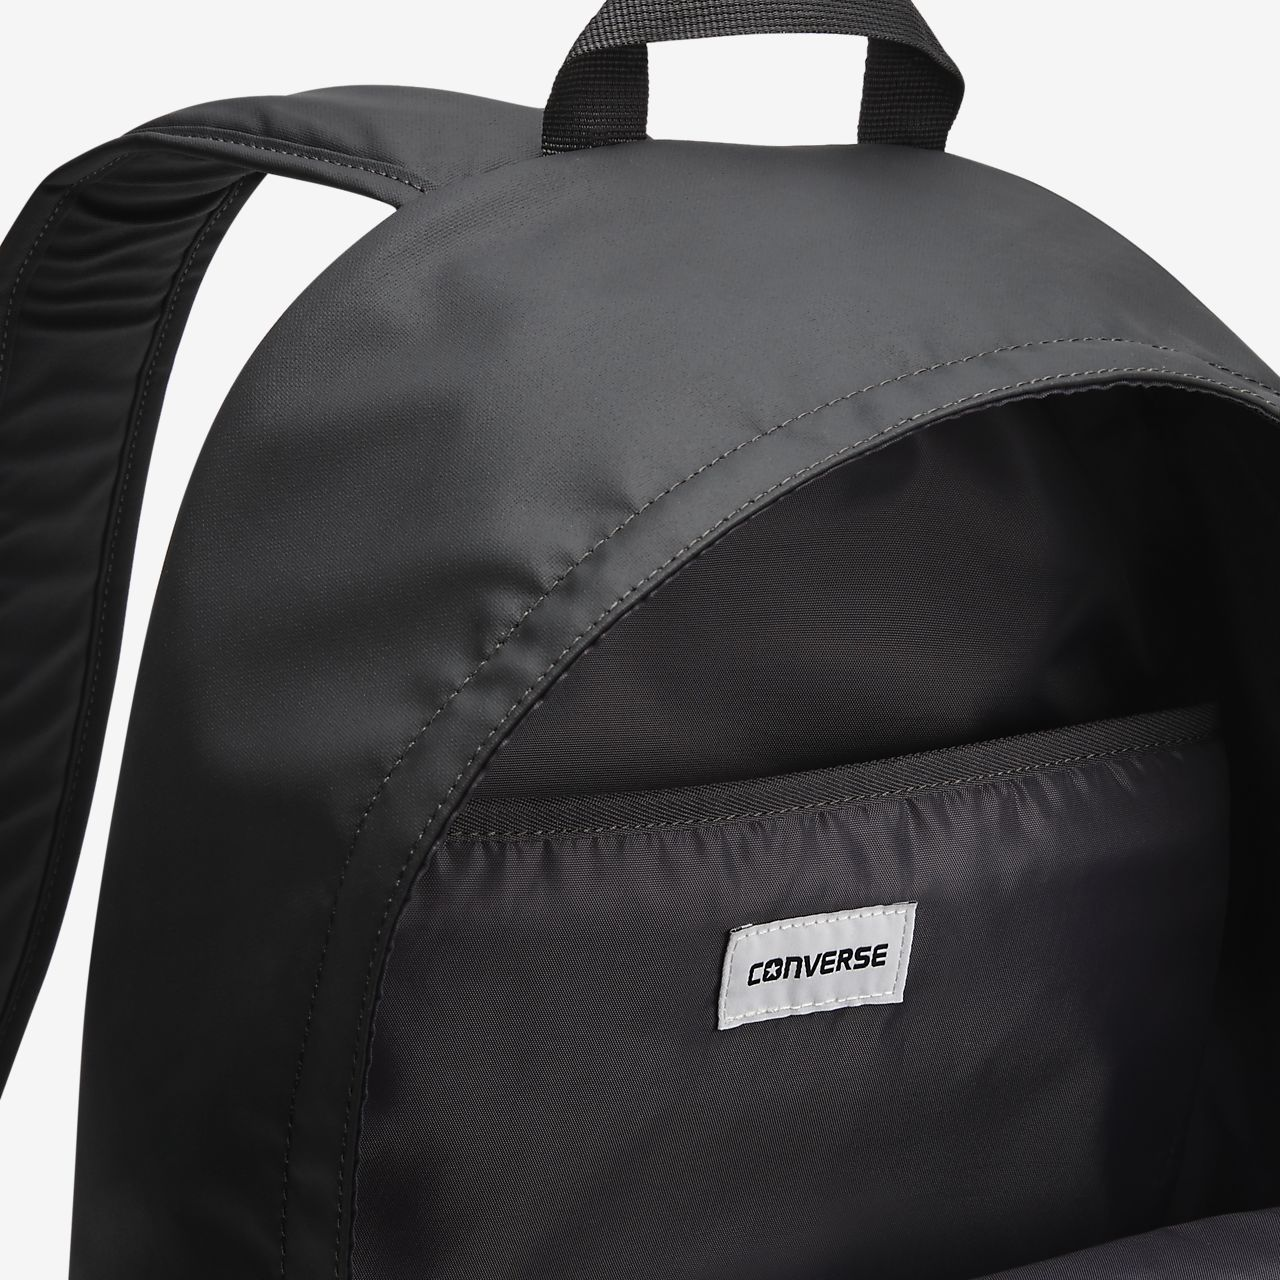 69fde2a04a2b Our Facilities. Our Facilities. converse backpack black